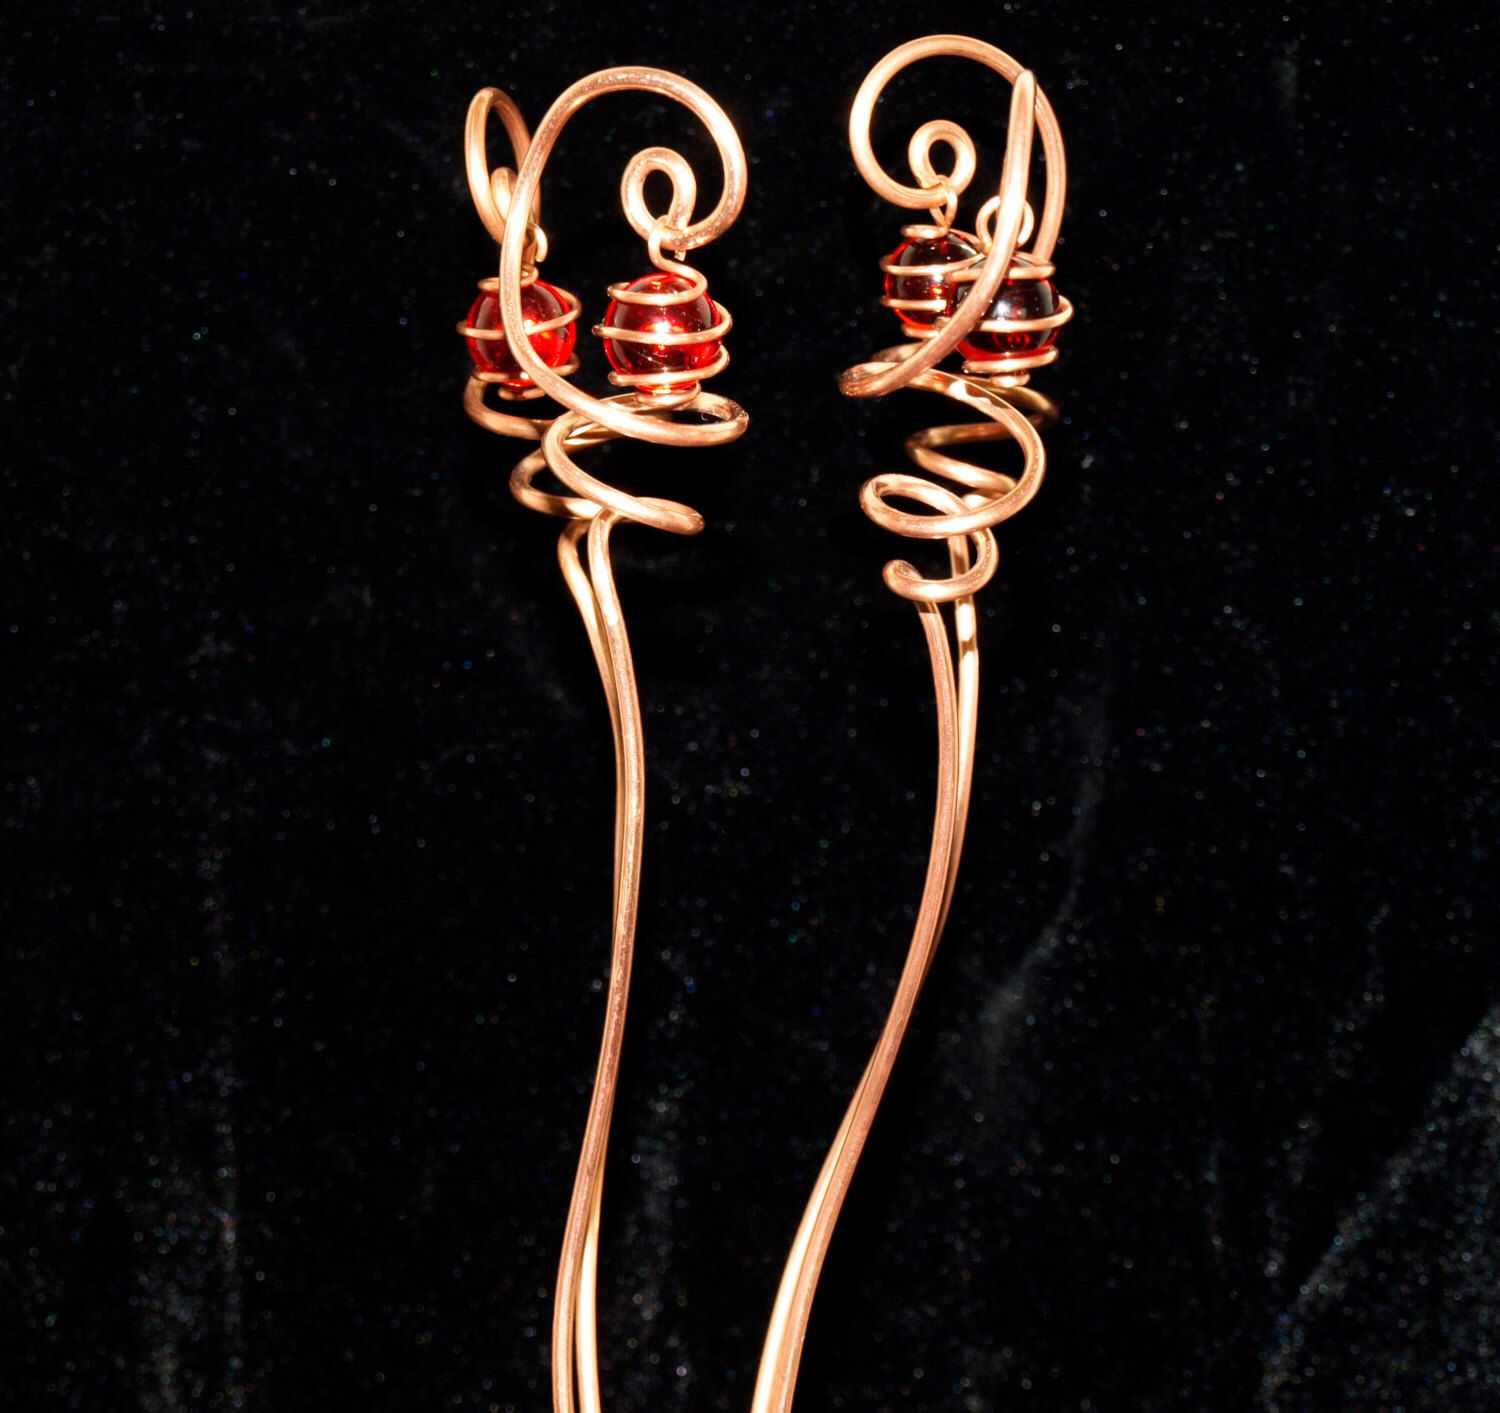 4 Solid Copper And Ruby Red Glass Suncatcher Plant Stakes 400 x 300